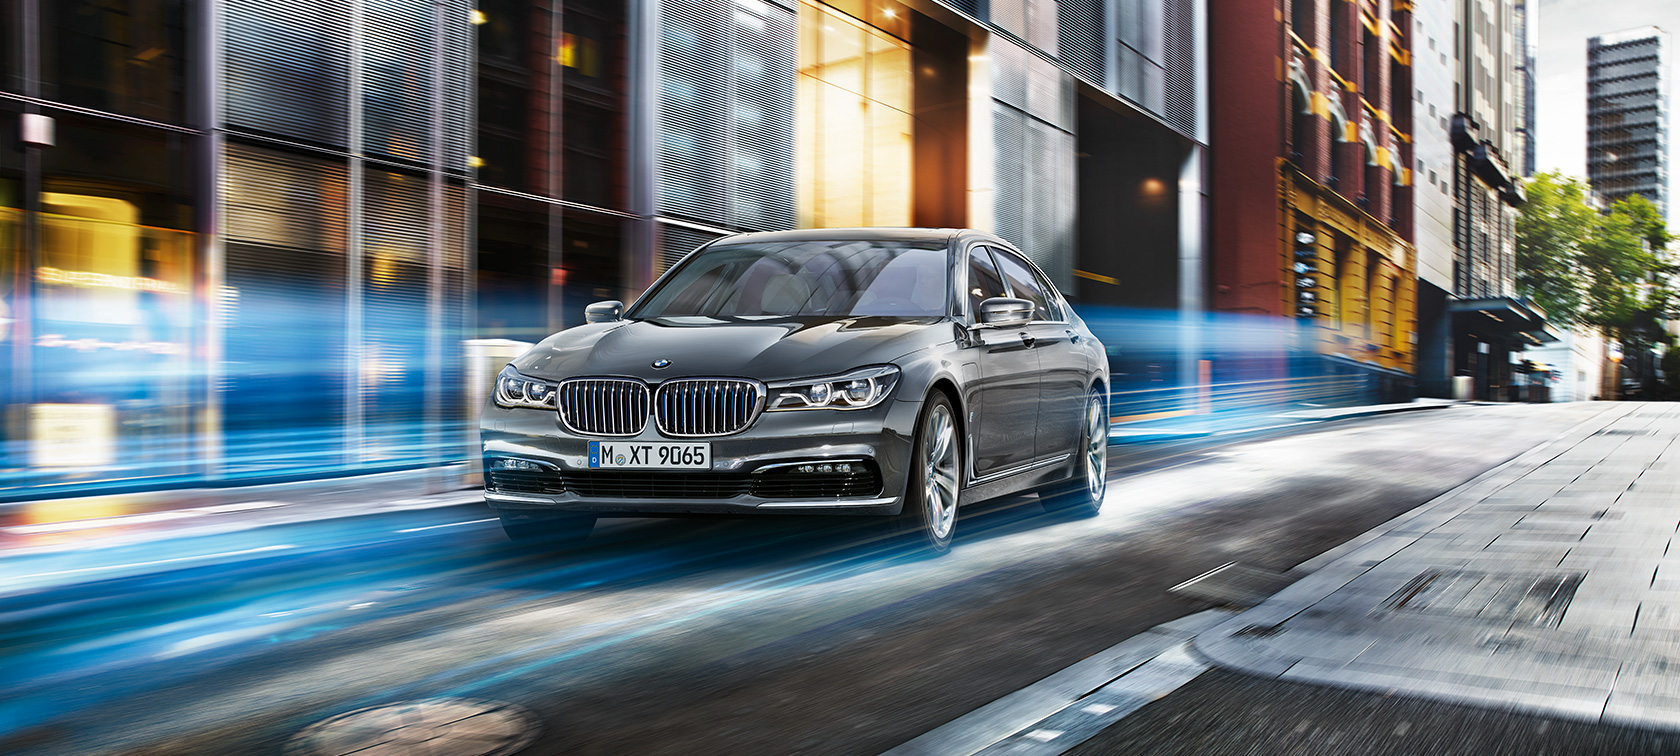 BMW 7-Series Sedan edrive: black on city streets